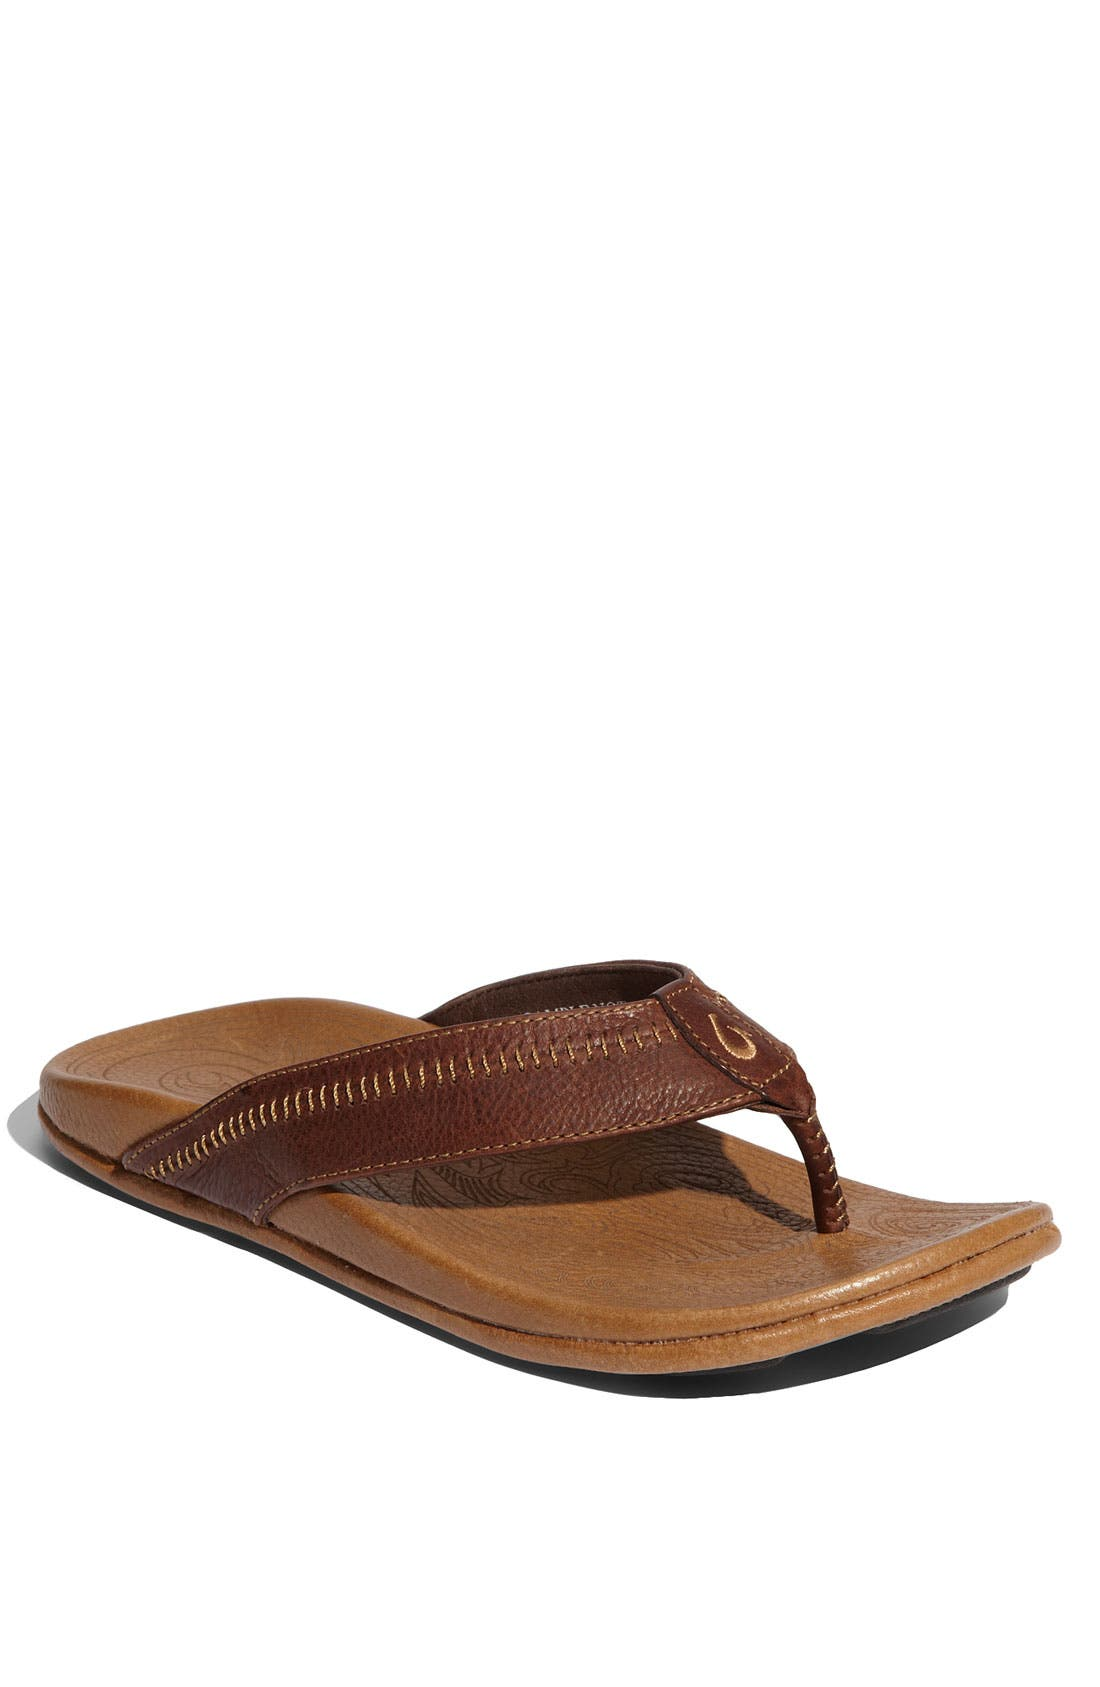 'Hiapo' Flip Flop,                         Main,                         color, DARK JAVA TOFFEE